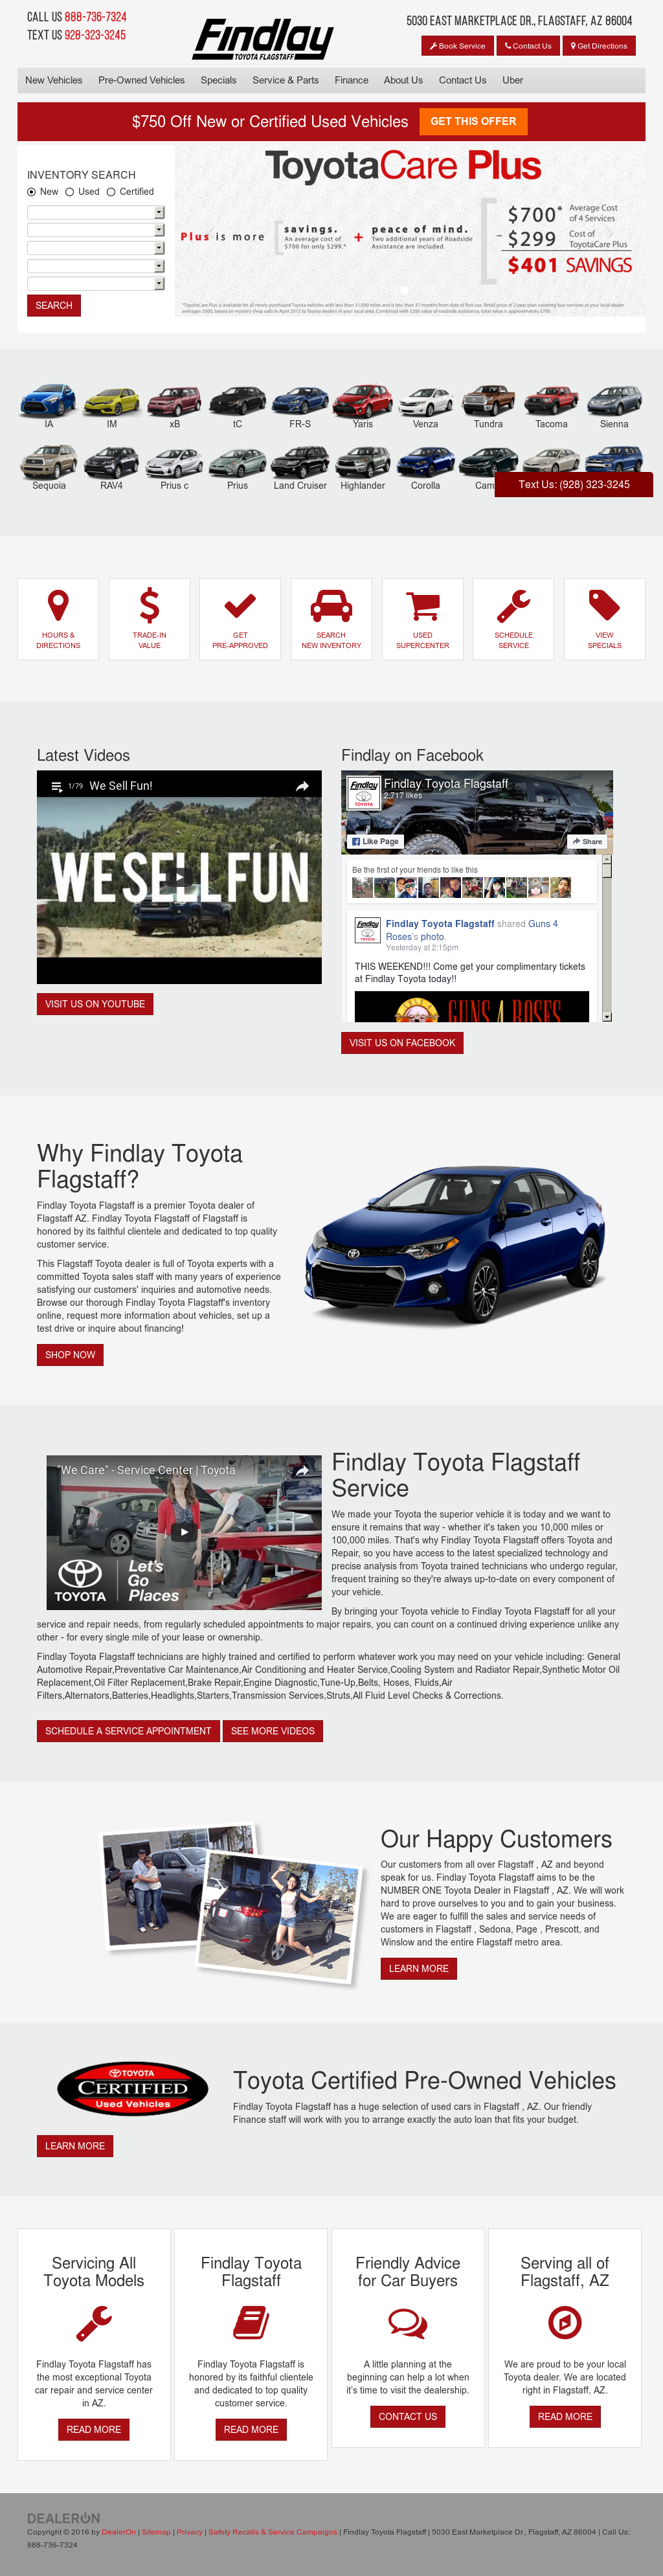 Findlay Toyota Flagstaff Competitors, Revenue and Employees